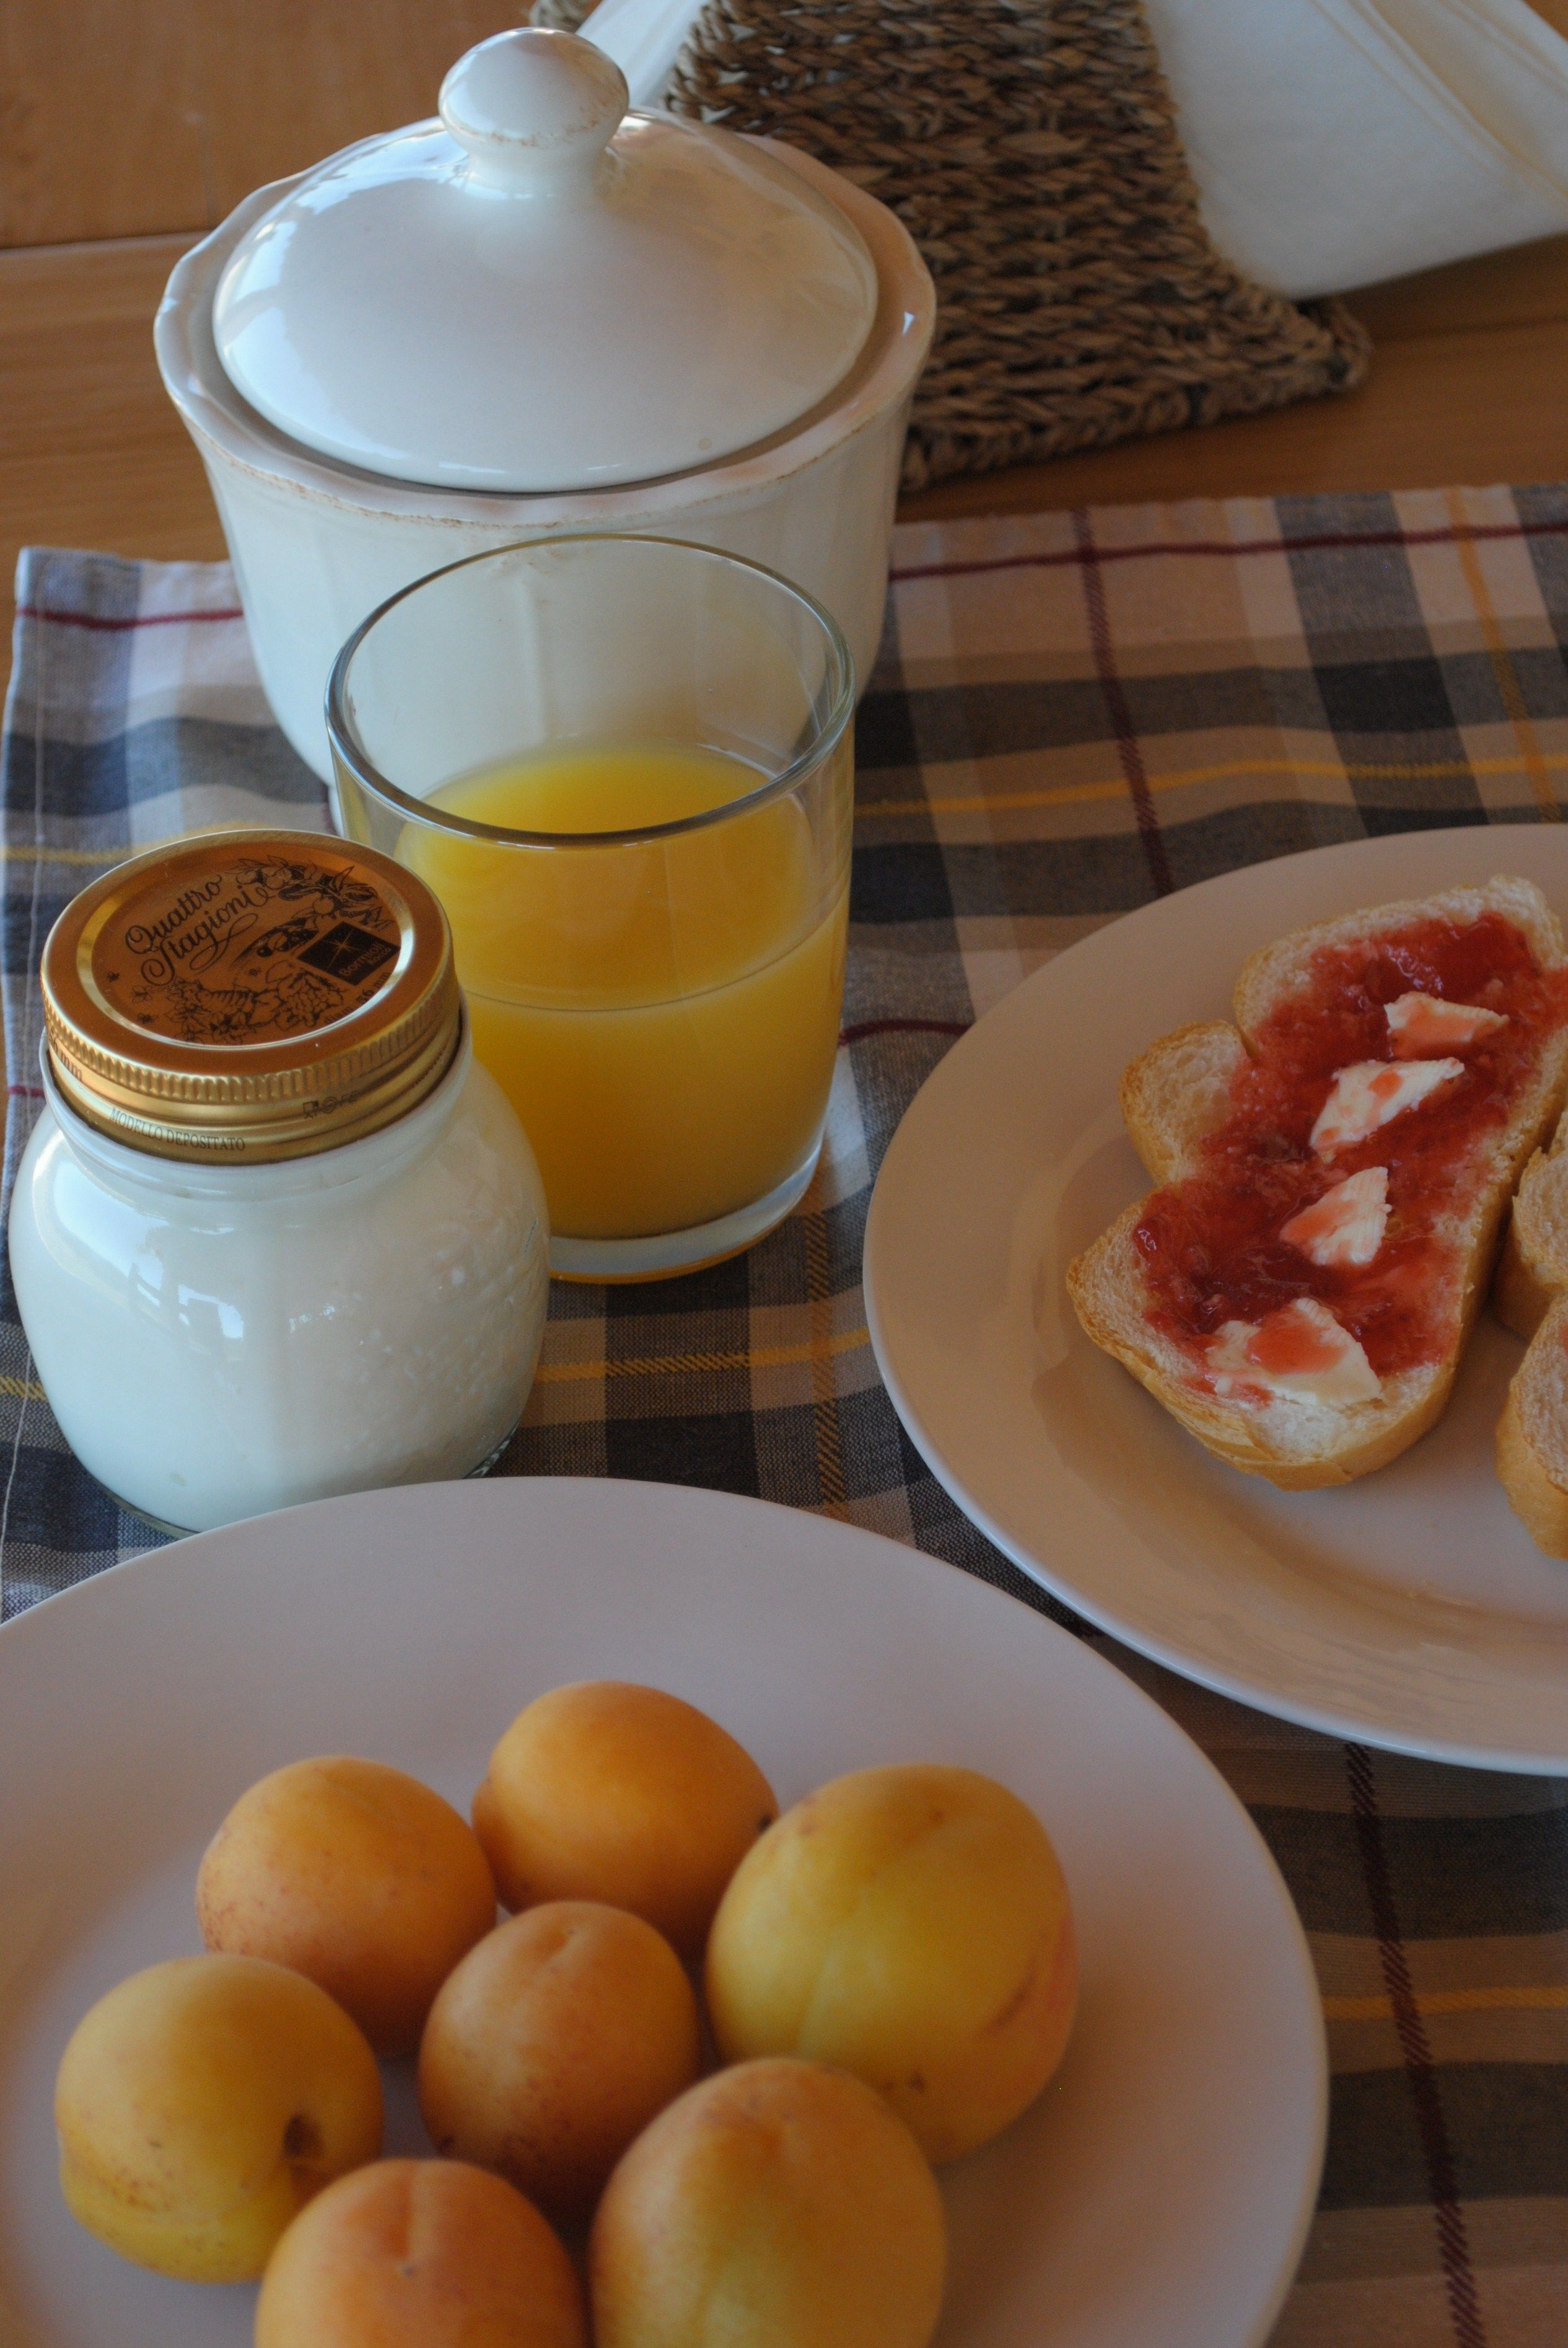 A good reason to chose our guesthouse? Our bio-breakfast!